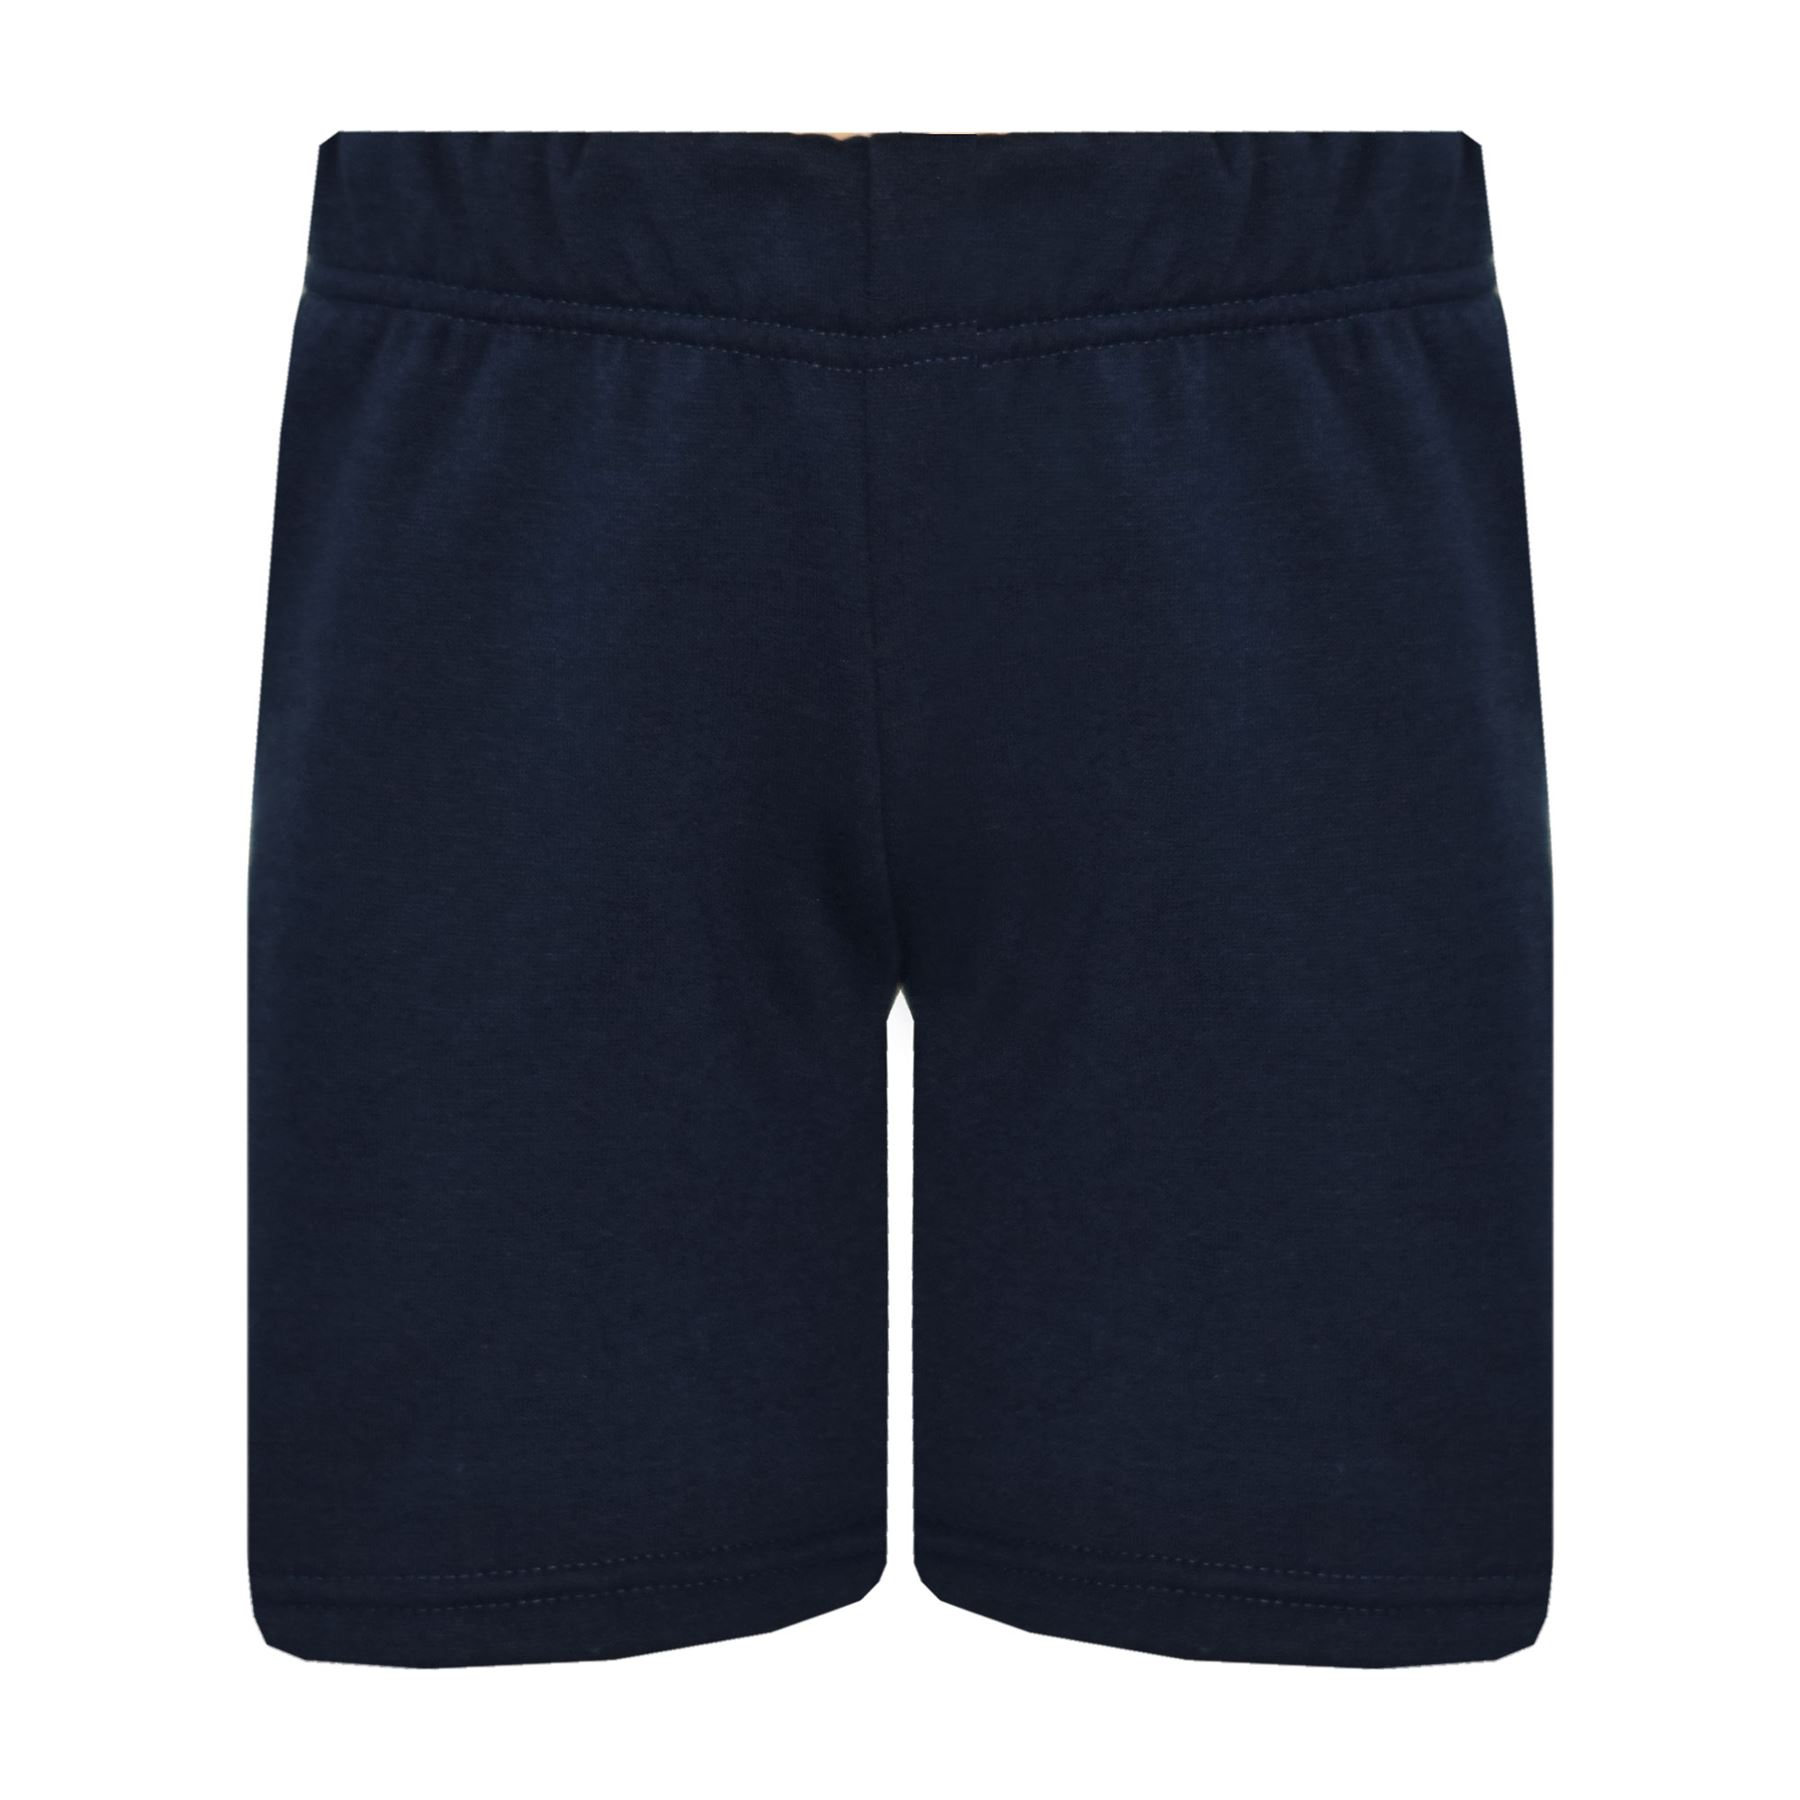 Shop buzz24.ga and save on Boys Shorts & Capris. Accessible View. My Account. Sign In. Track My. Orders. SHOP DEPARTMENTS. Same Day Pickup; $ Carter's Pull-On Shorts Toddler Boys. Add To Cart. Few Left. Arizona Boys Chino Shorts - Preschool (10) Add To Cart. New. $ Nike Pull-On Shorts Preschool Boys. Add To Cart.